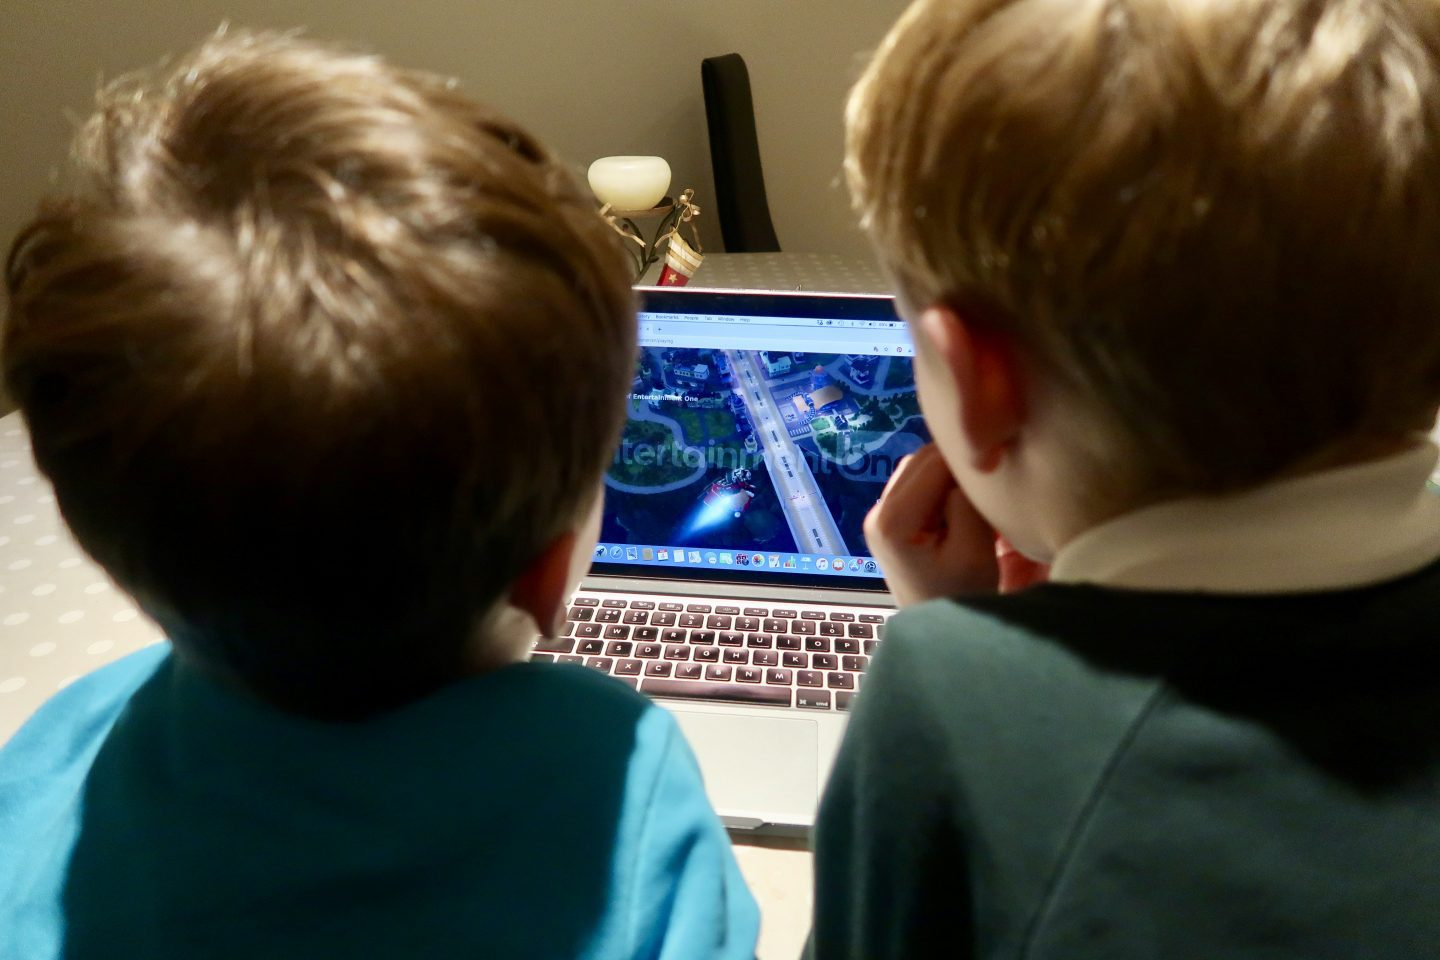 The backs of 2 boys heads as they watch a Ricky Zoom Christmas special episode on a Mac laptop